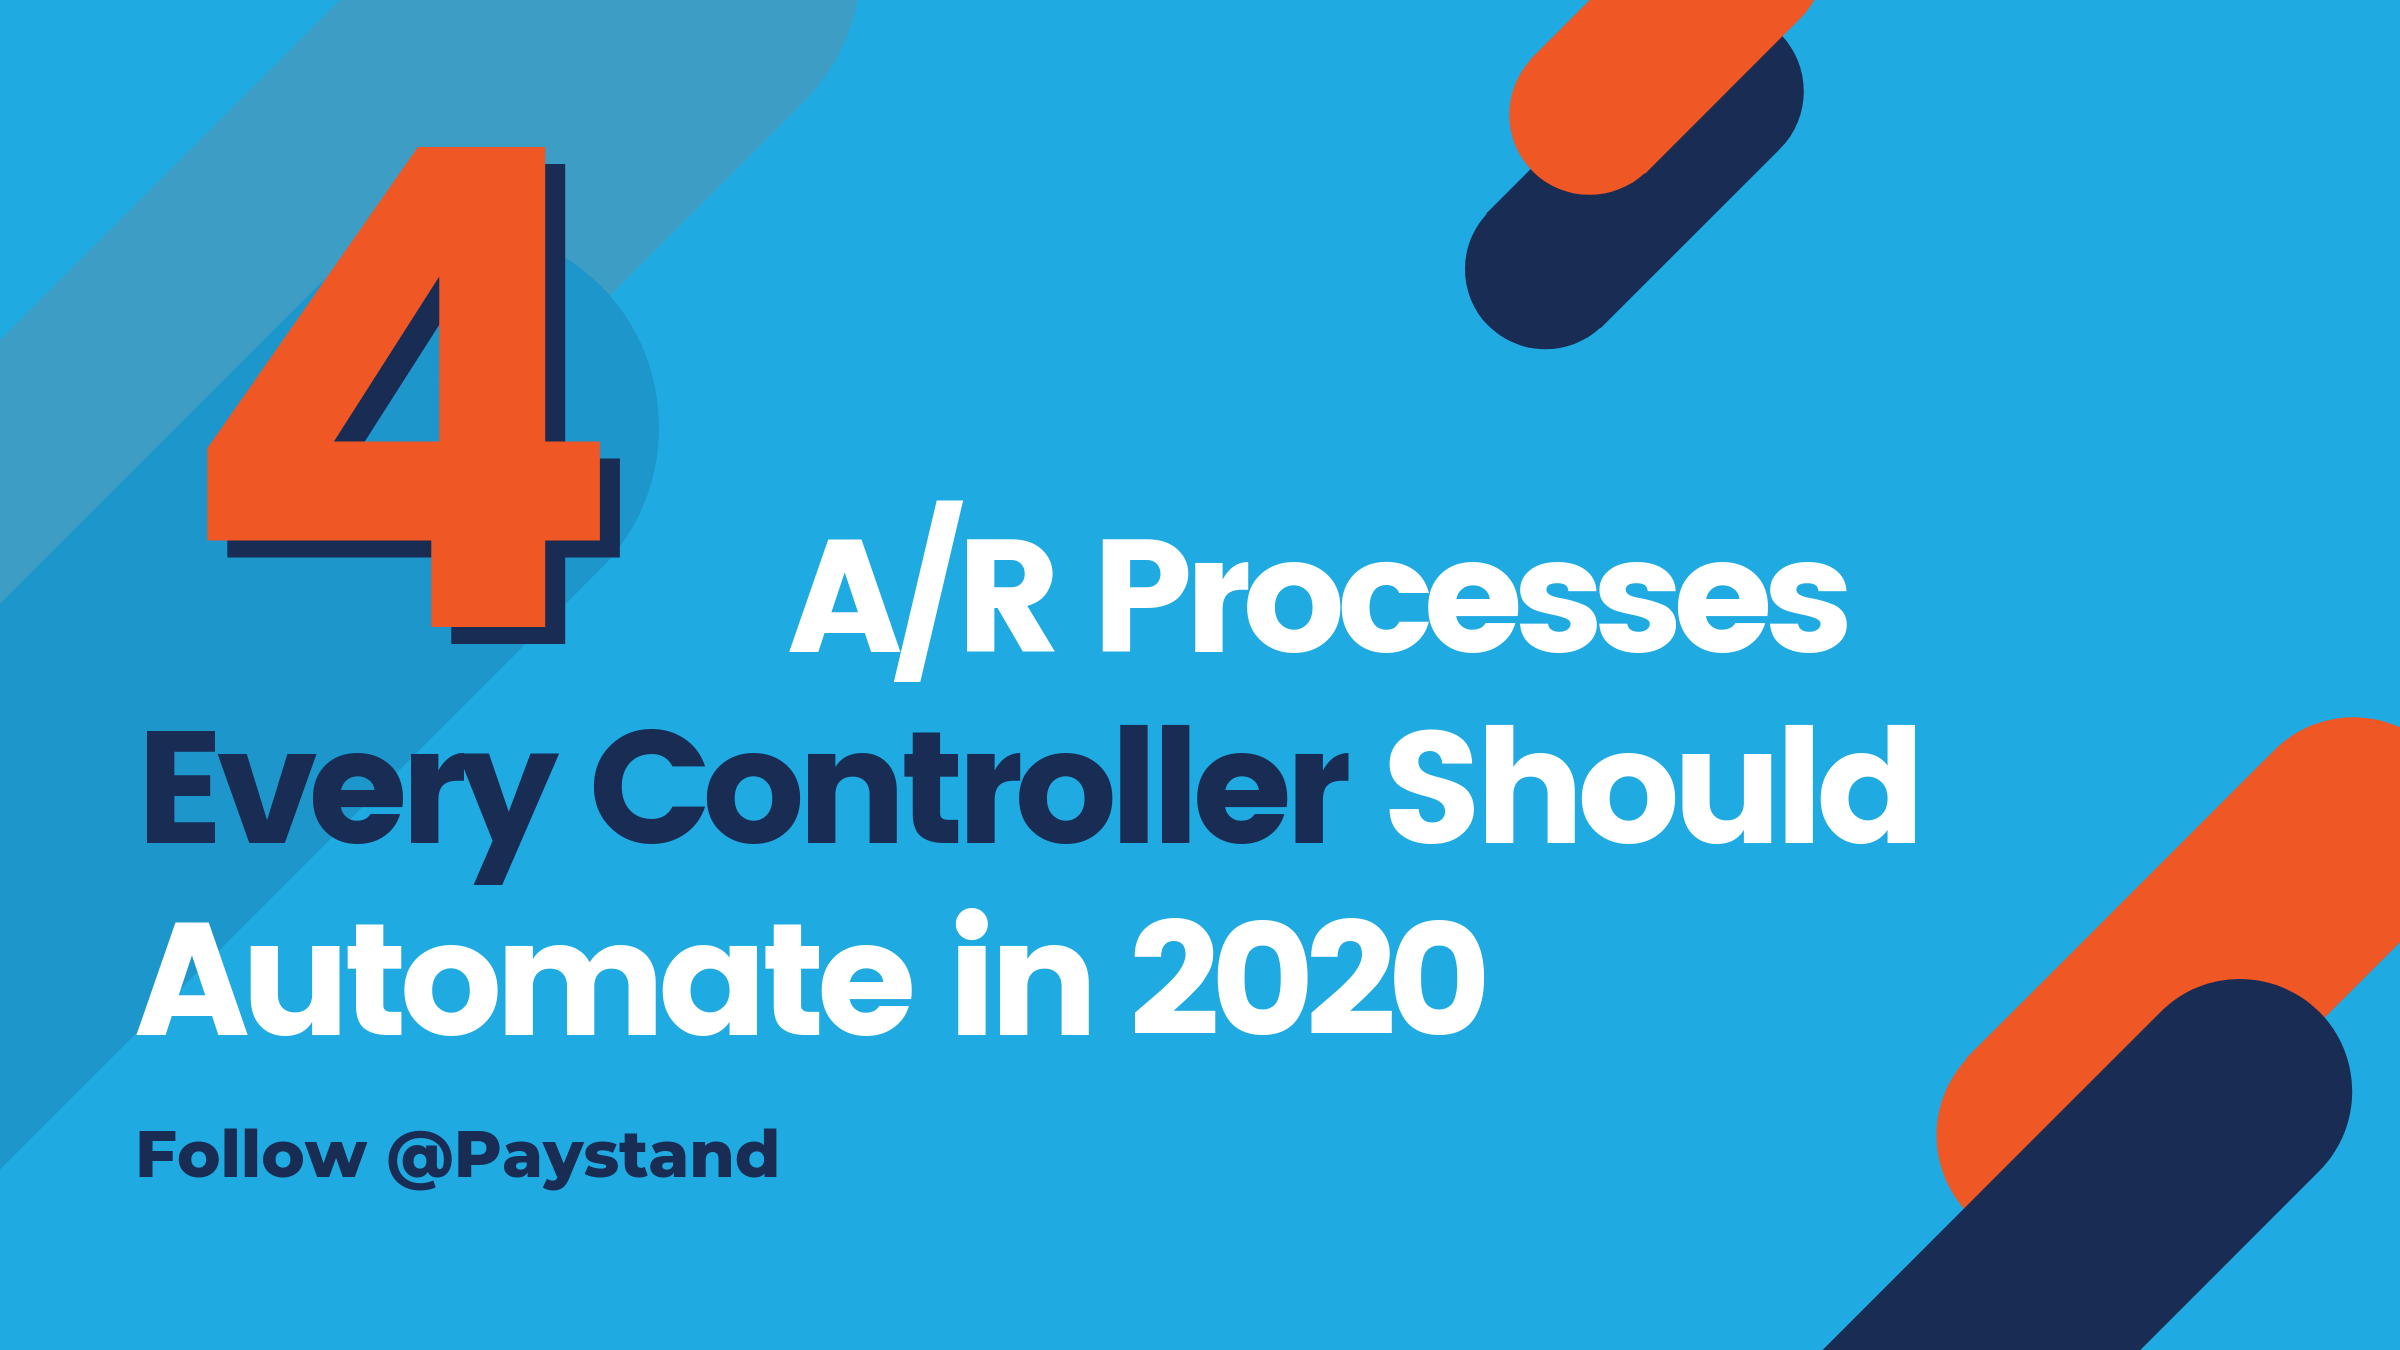 4 AR Processes Every Controller Should Automate in 2020